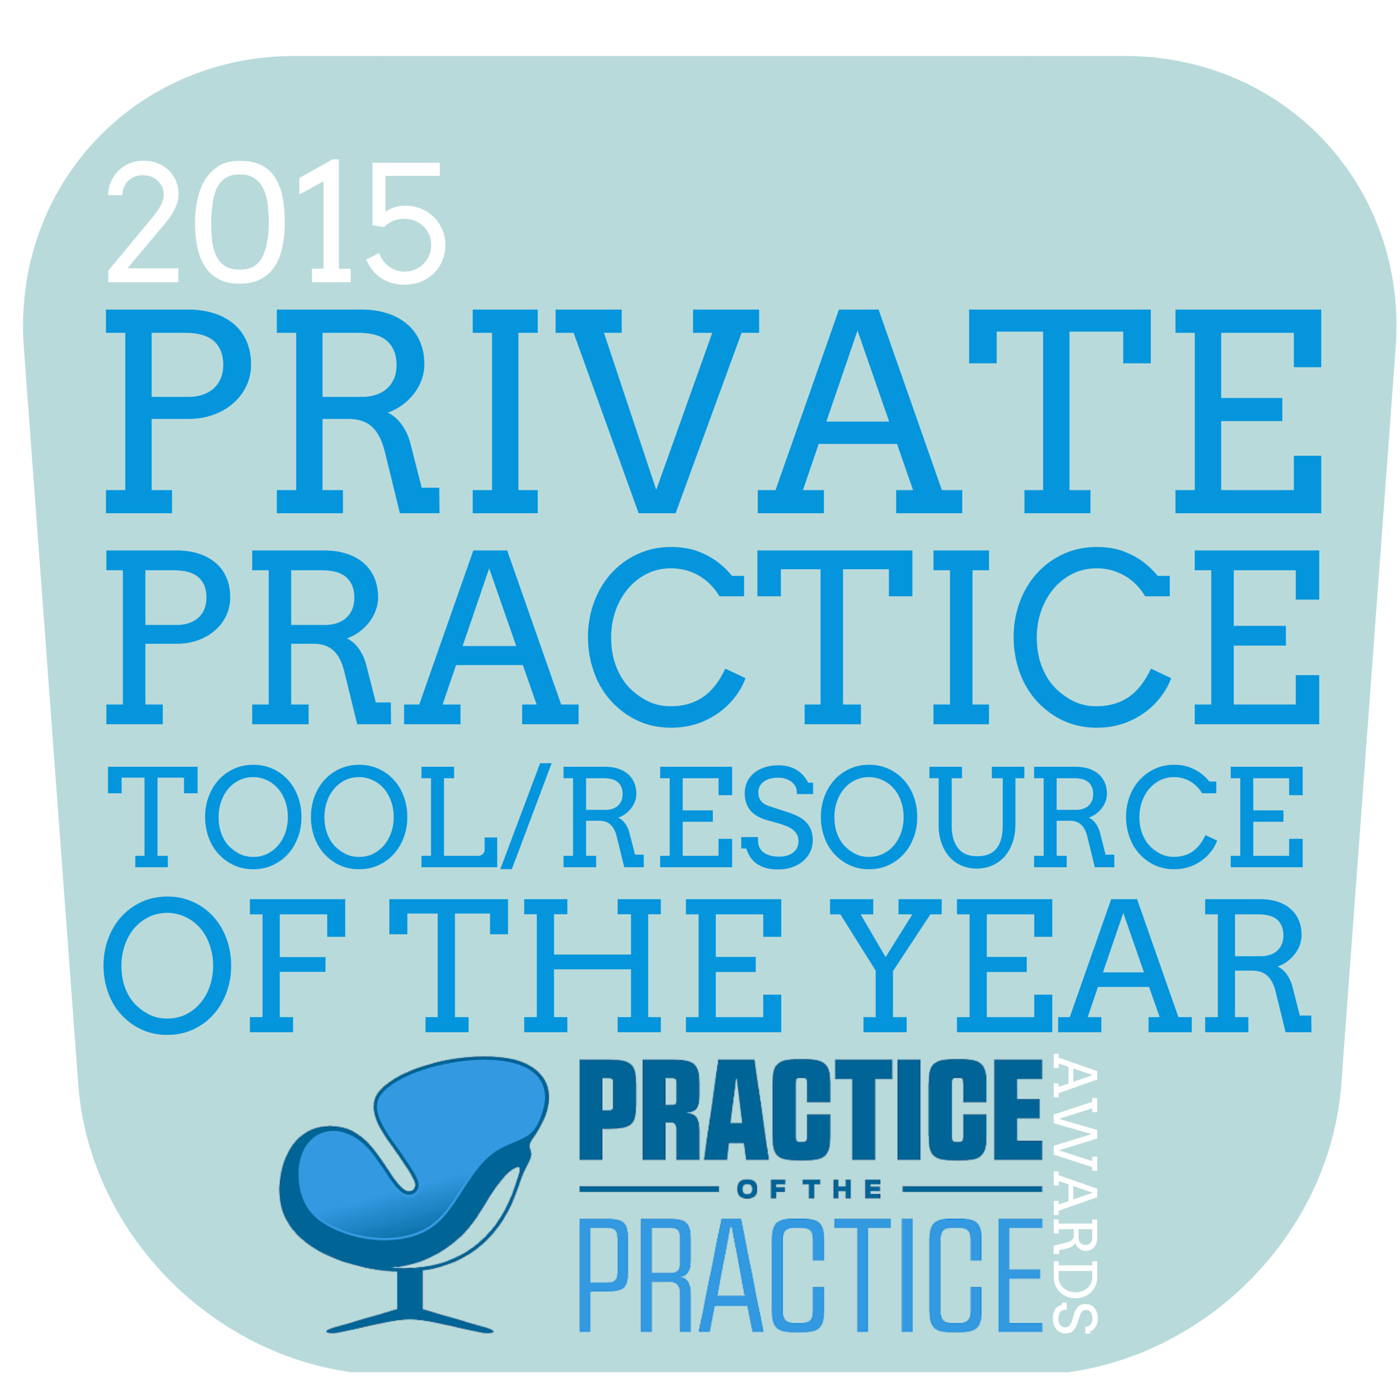 2015 Private Practice Resource of the Year